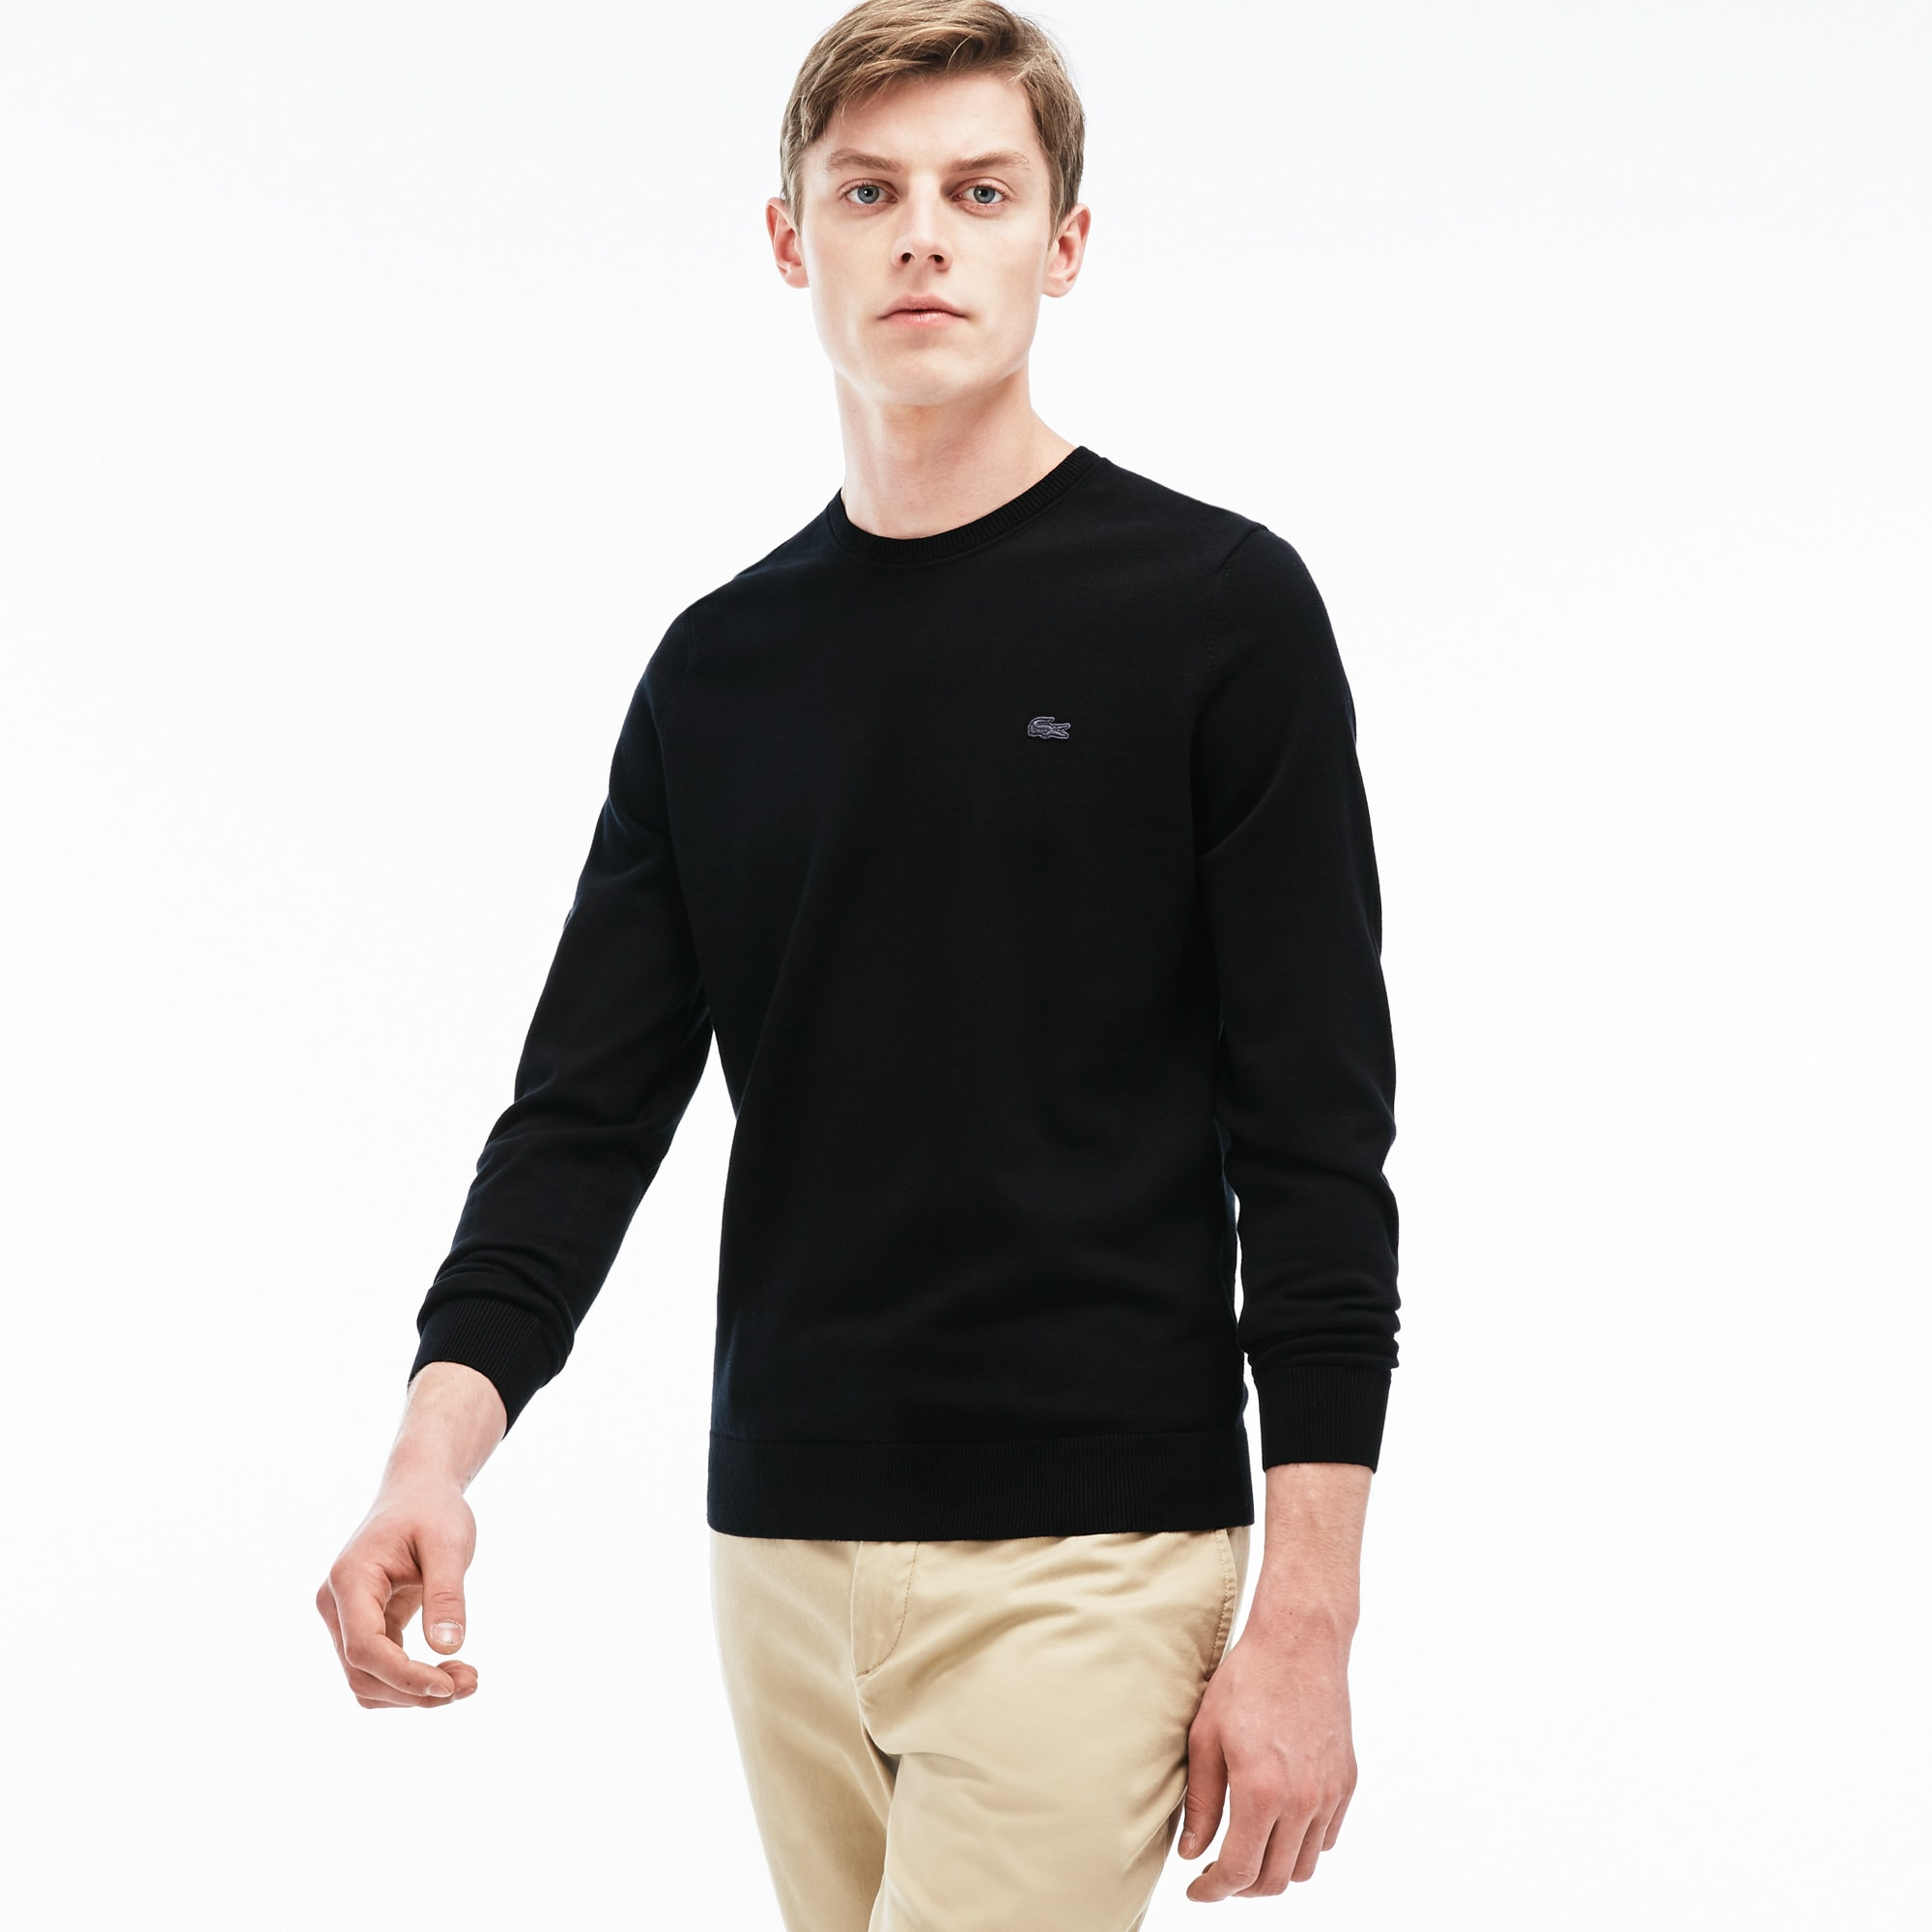 018ac967f73d Men s Ribbed V-Neck Sweater.  67.99.  135.00. Black · Navy Blue · Red ·  Grey. + 3 colors